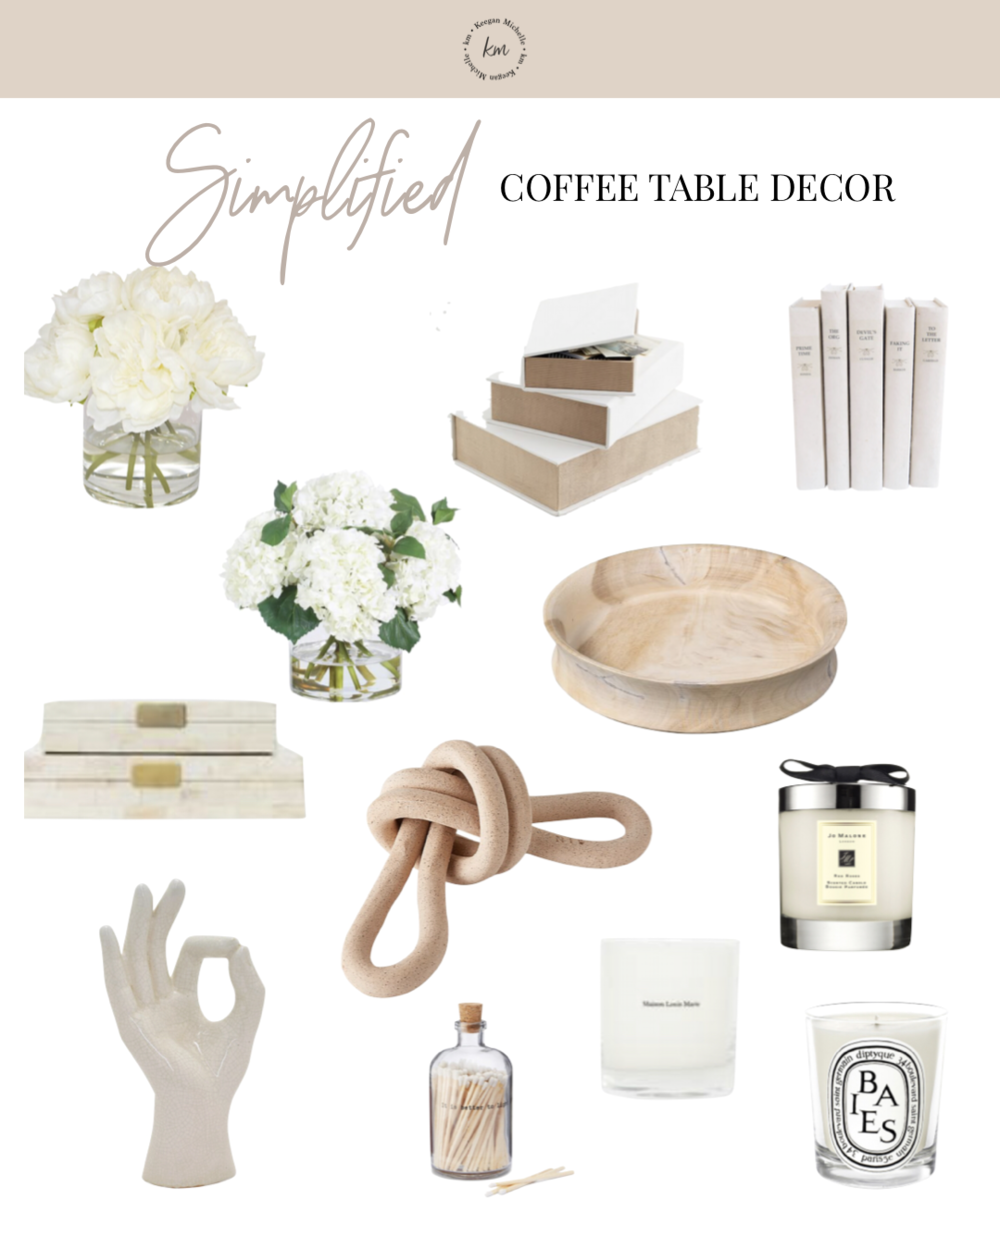 simplified coffee table decor